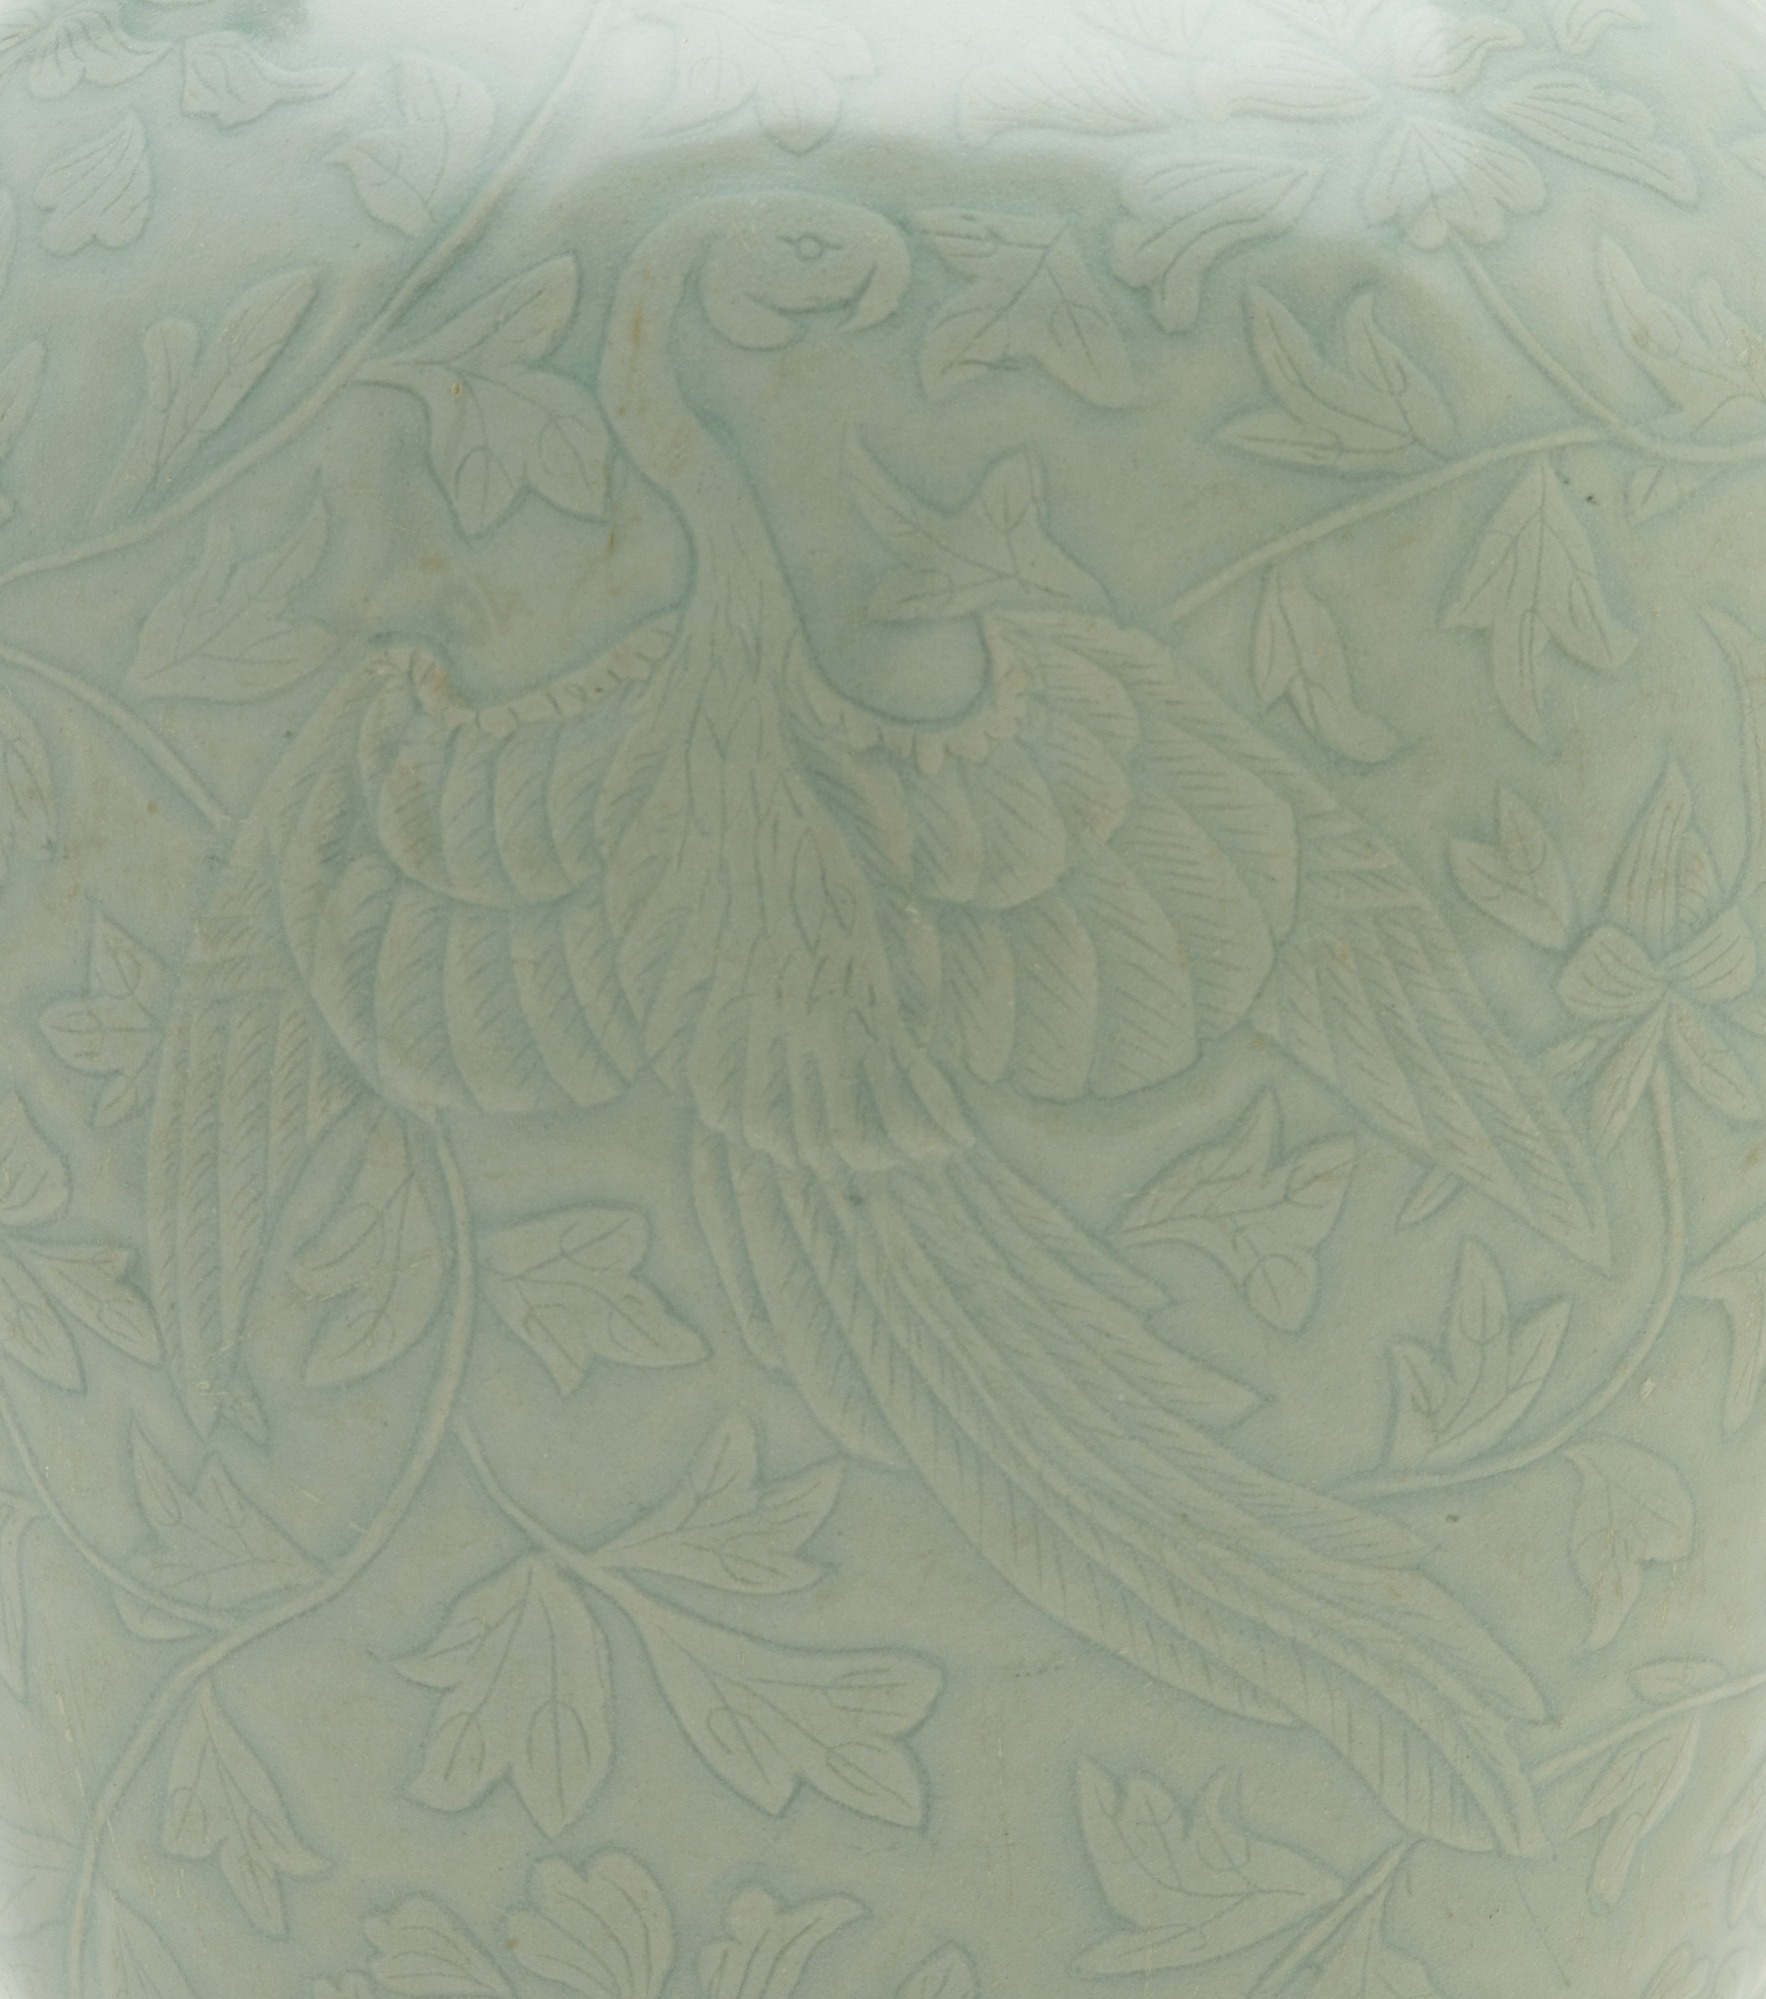 detail: Bottle with carved and incised design of two phoenixes and peony vinescrolls